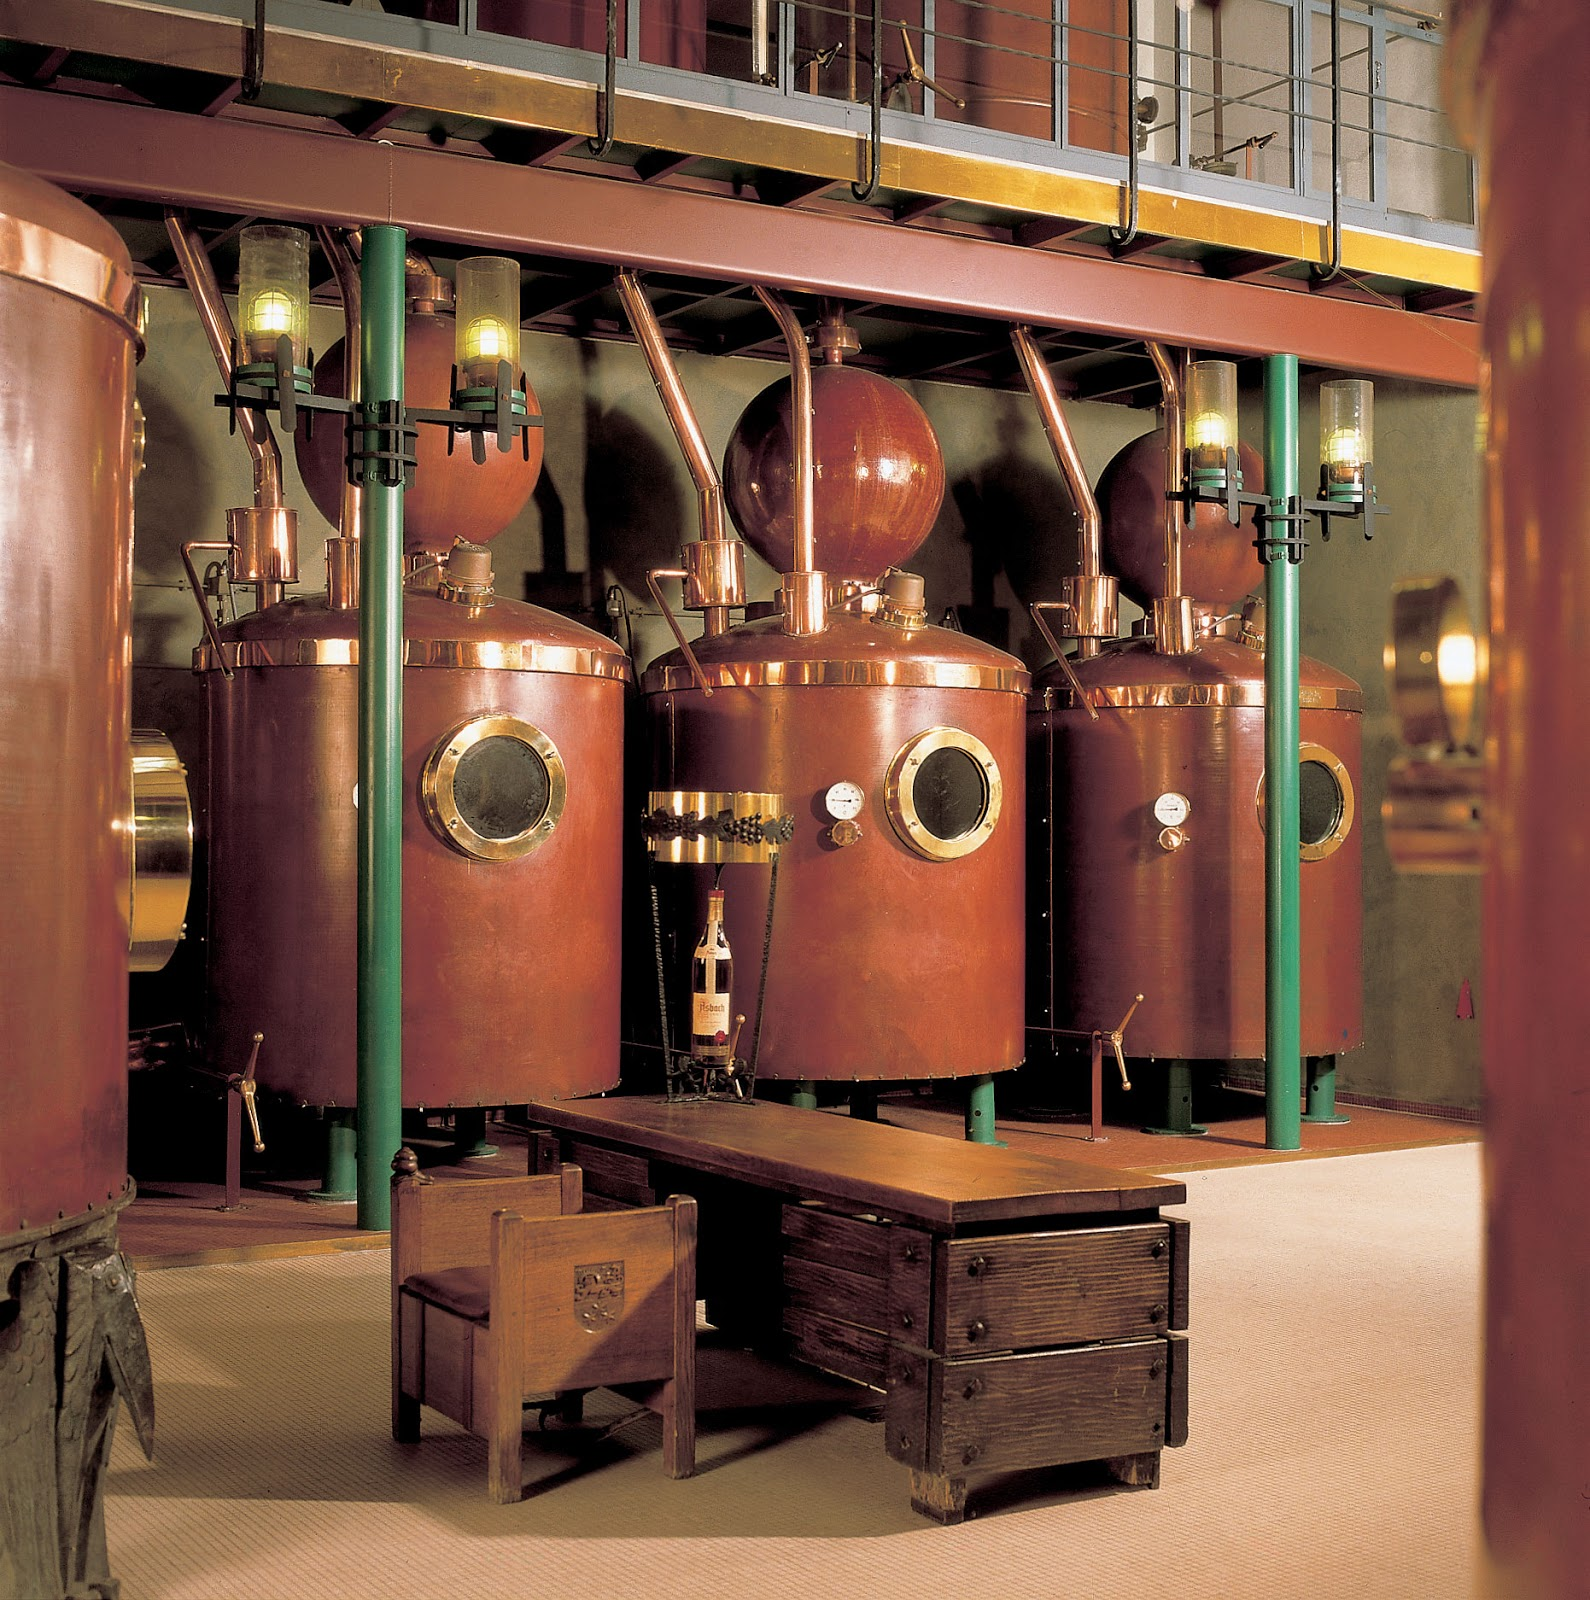 The original copper Asbach distilling vats. Photo: © Asbach.de. Unauthorized use is prohibited.